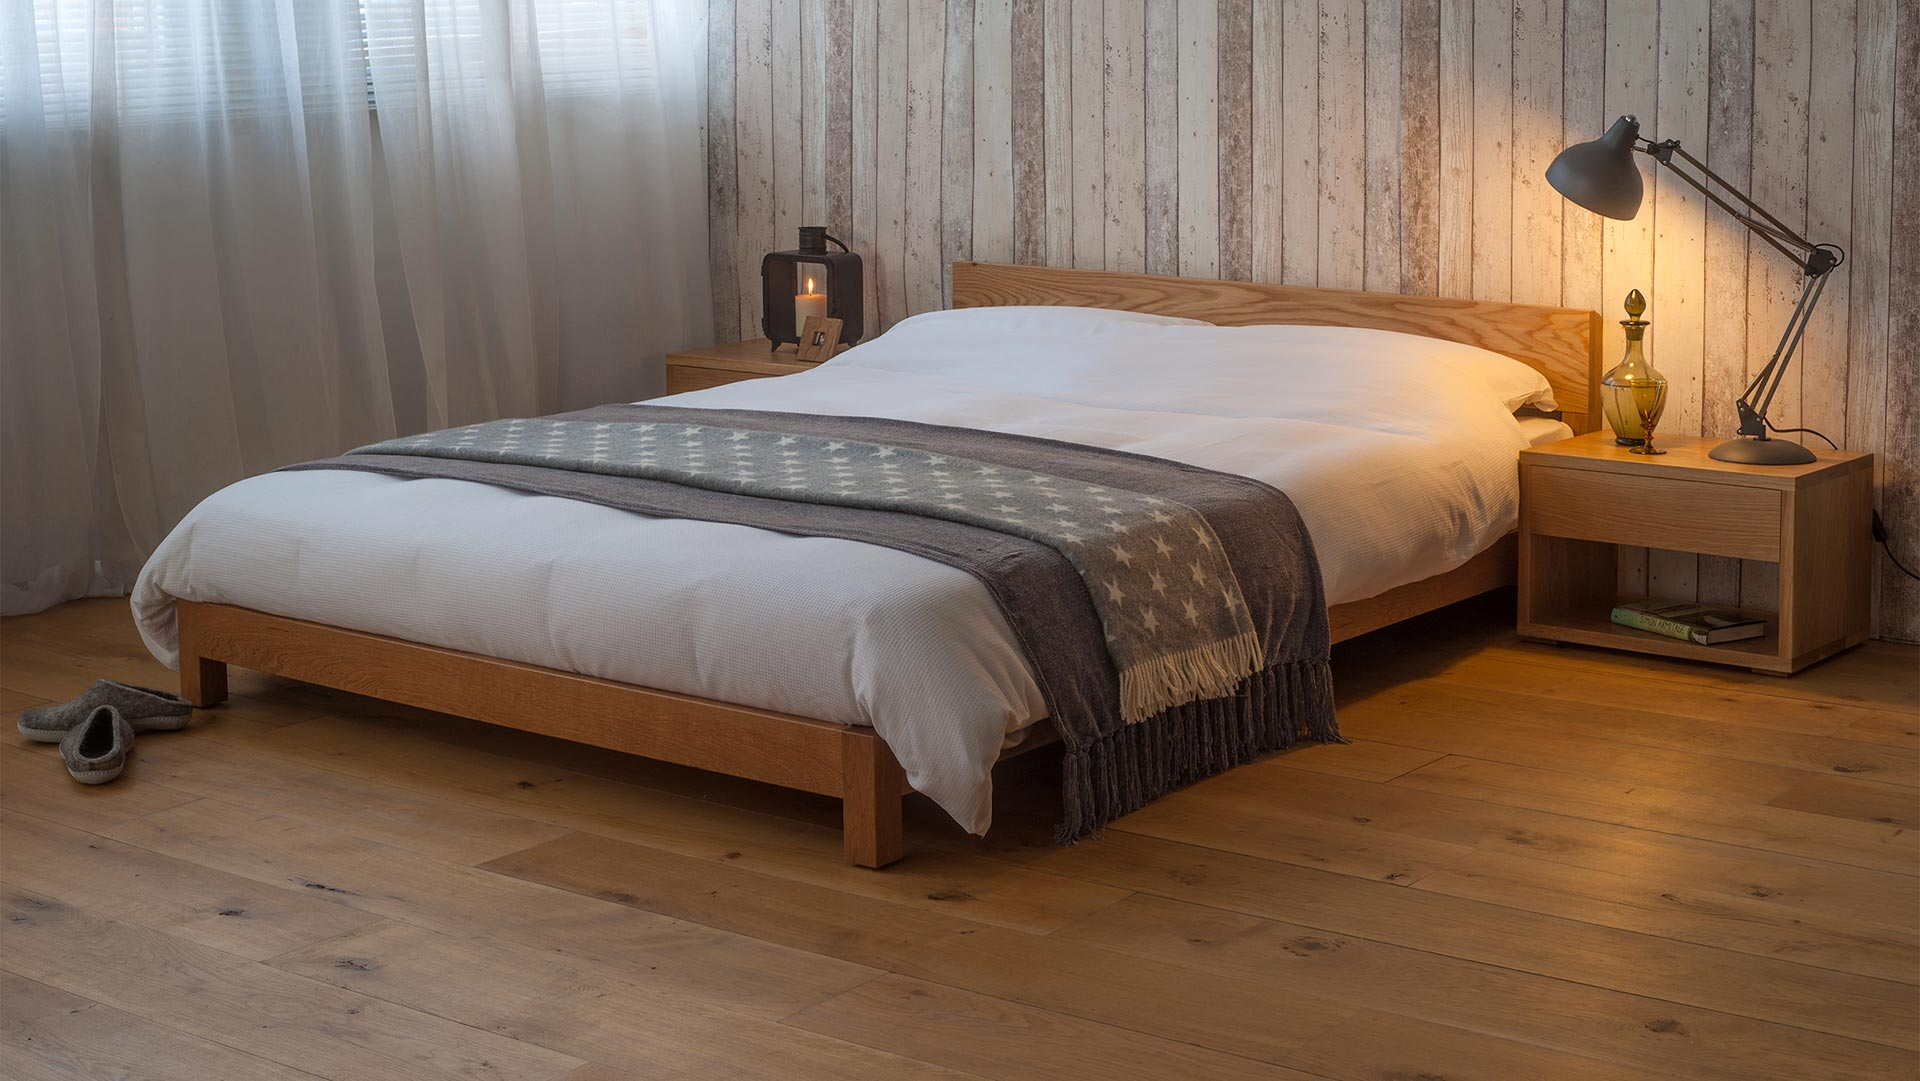 Low Beds Amp Contemporary Lofts Inspiration Natural Bed